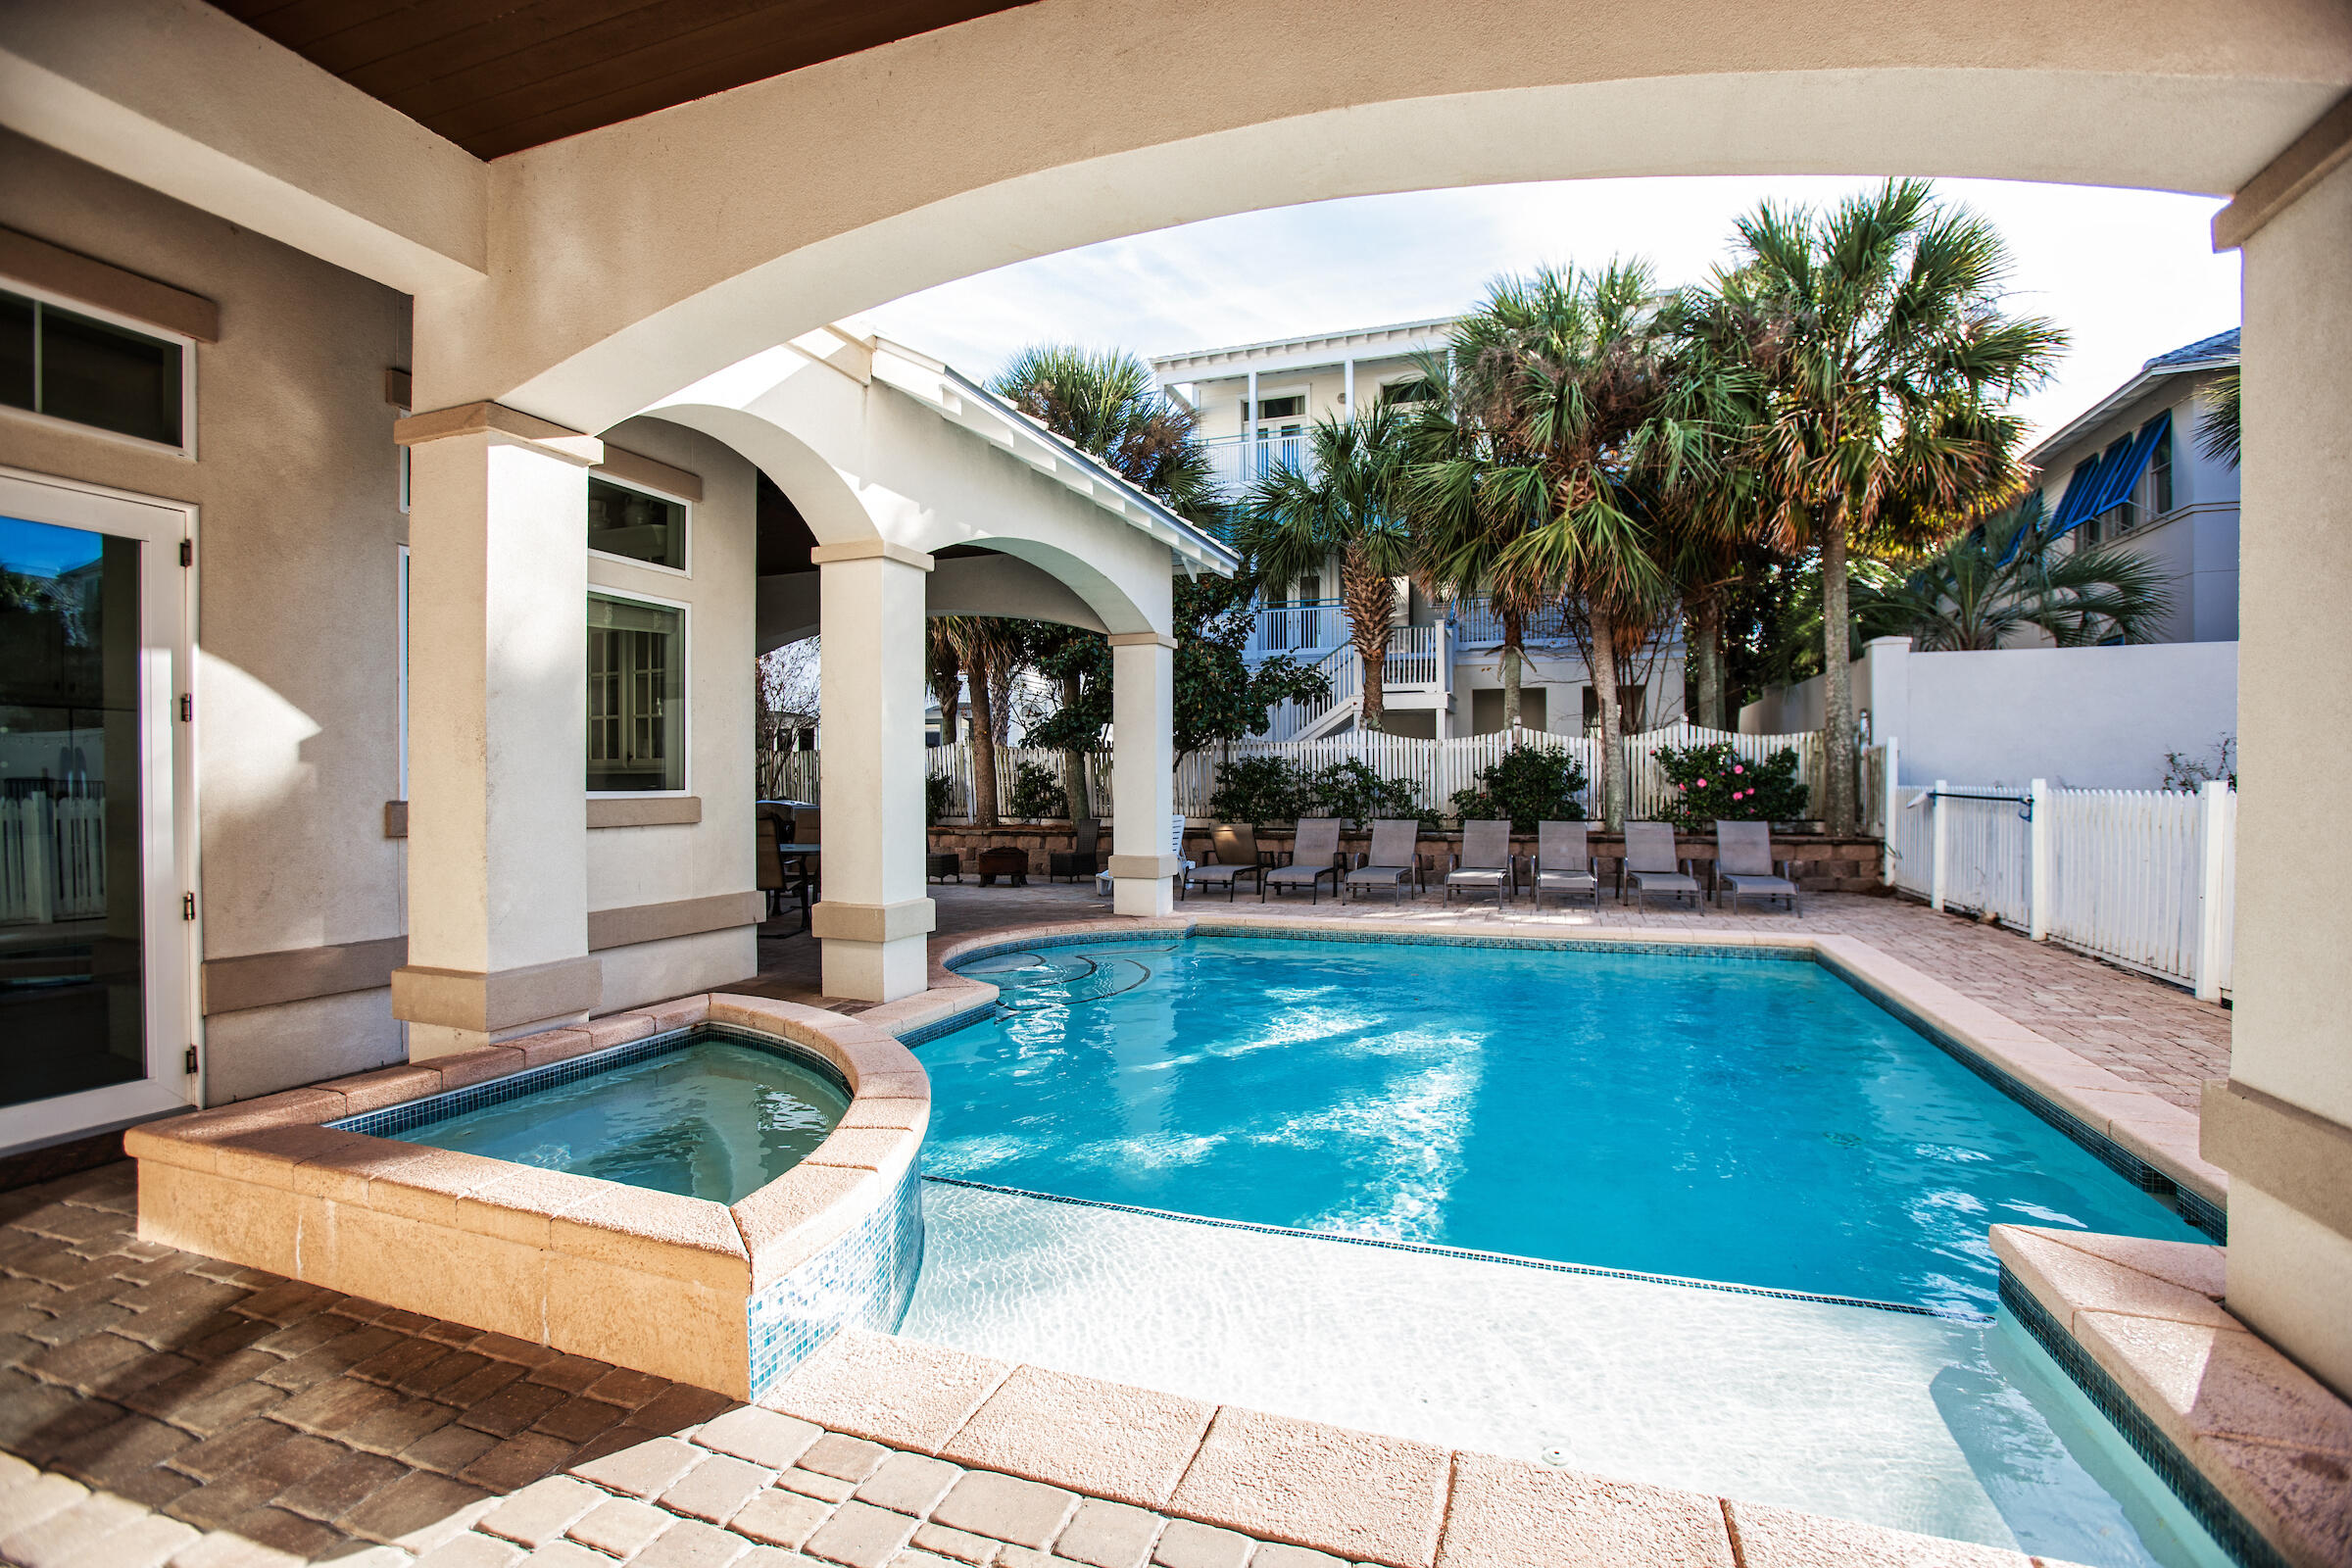 Stunning 3 story Mediterranean style home with private pool only a 2 minute walk to the private beac